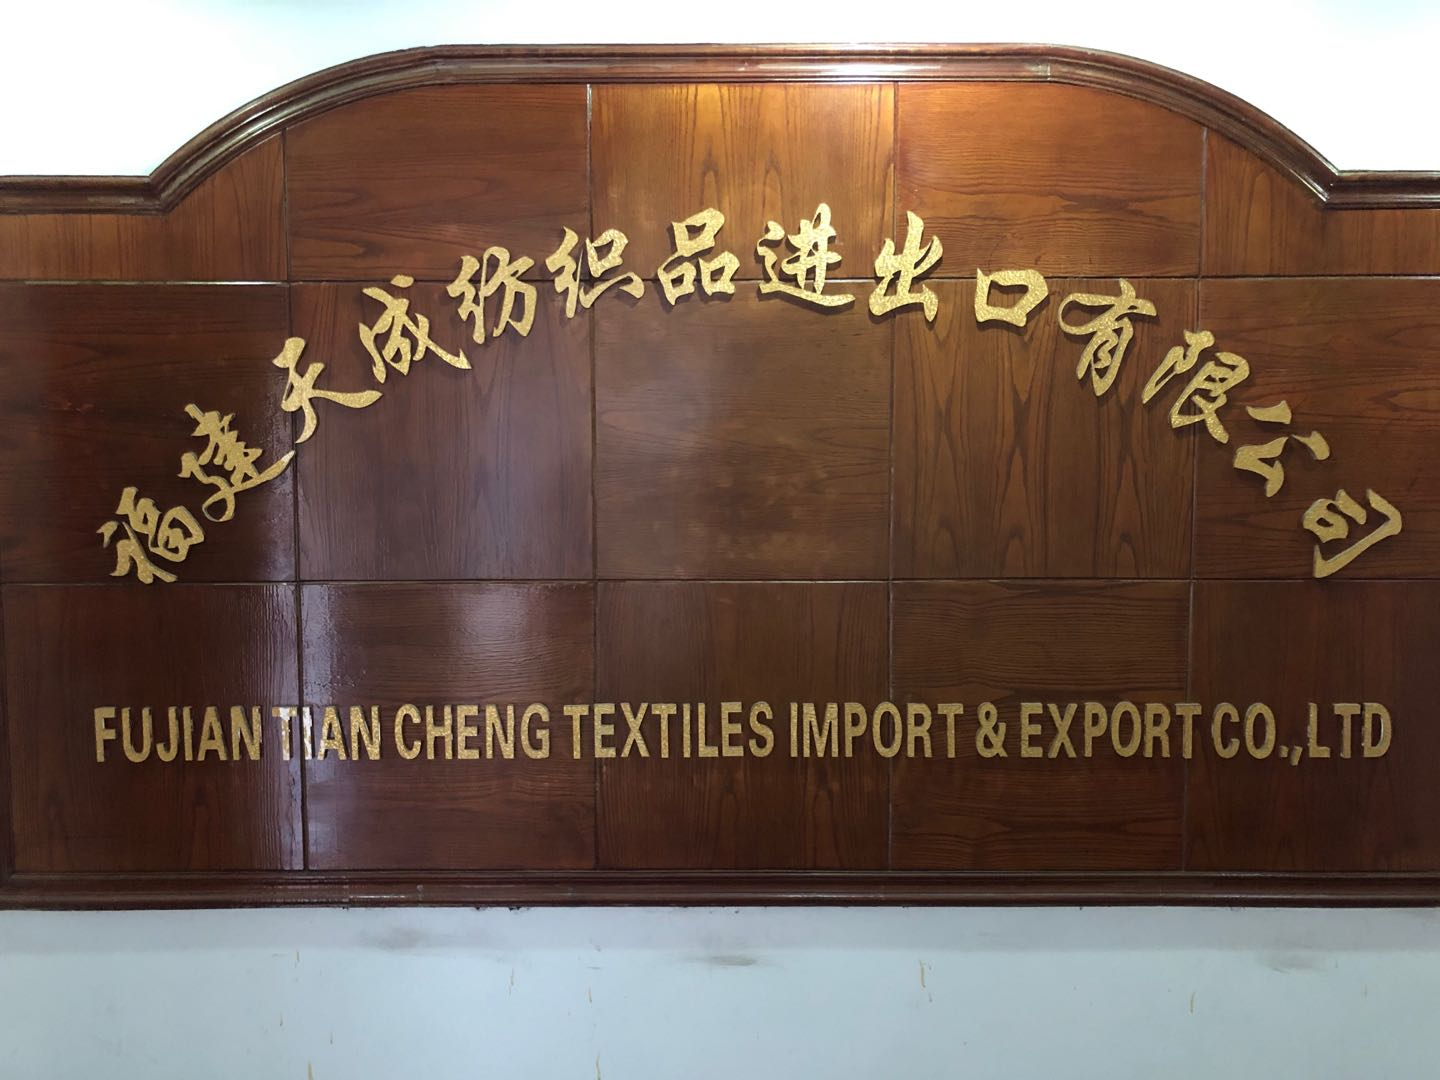 FUJIAN TIAN CHENG TEXTILES IMPORT & EXPORT CO.,LTD